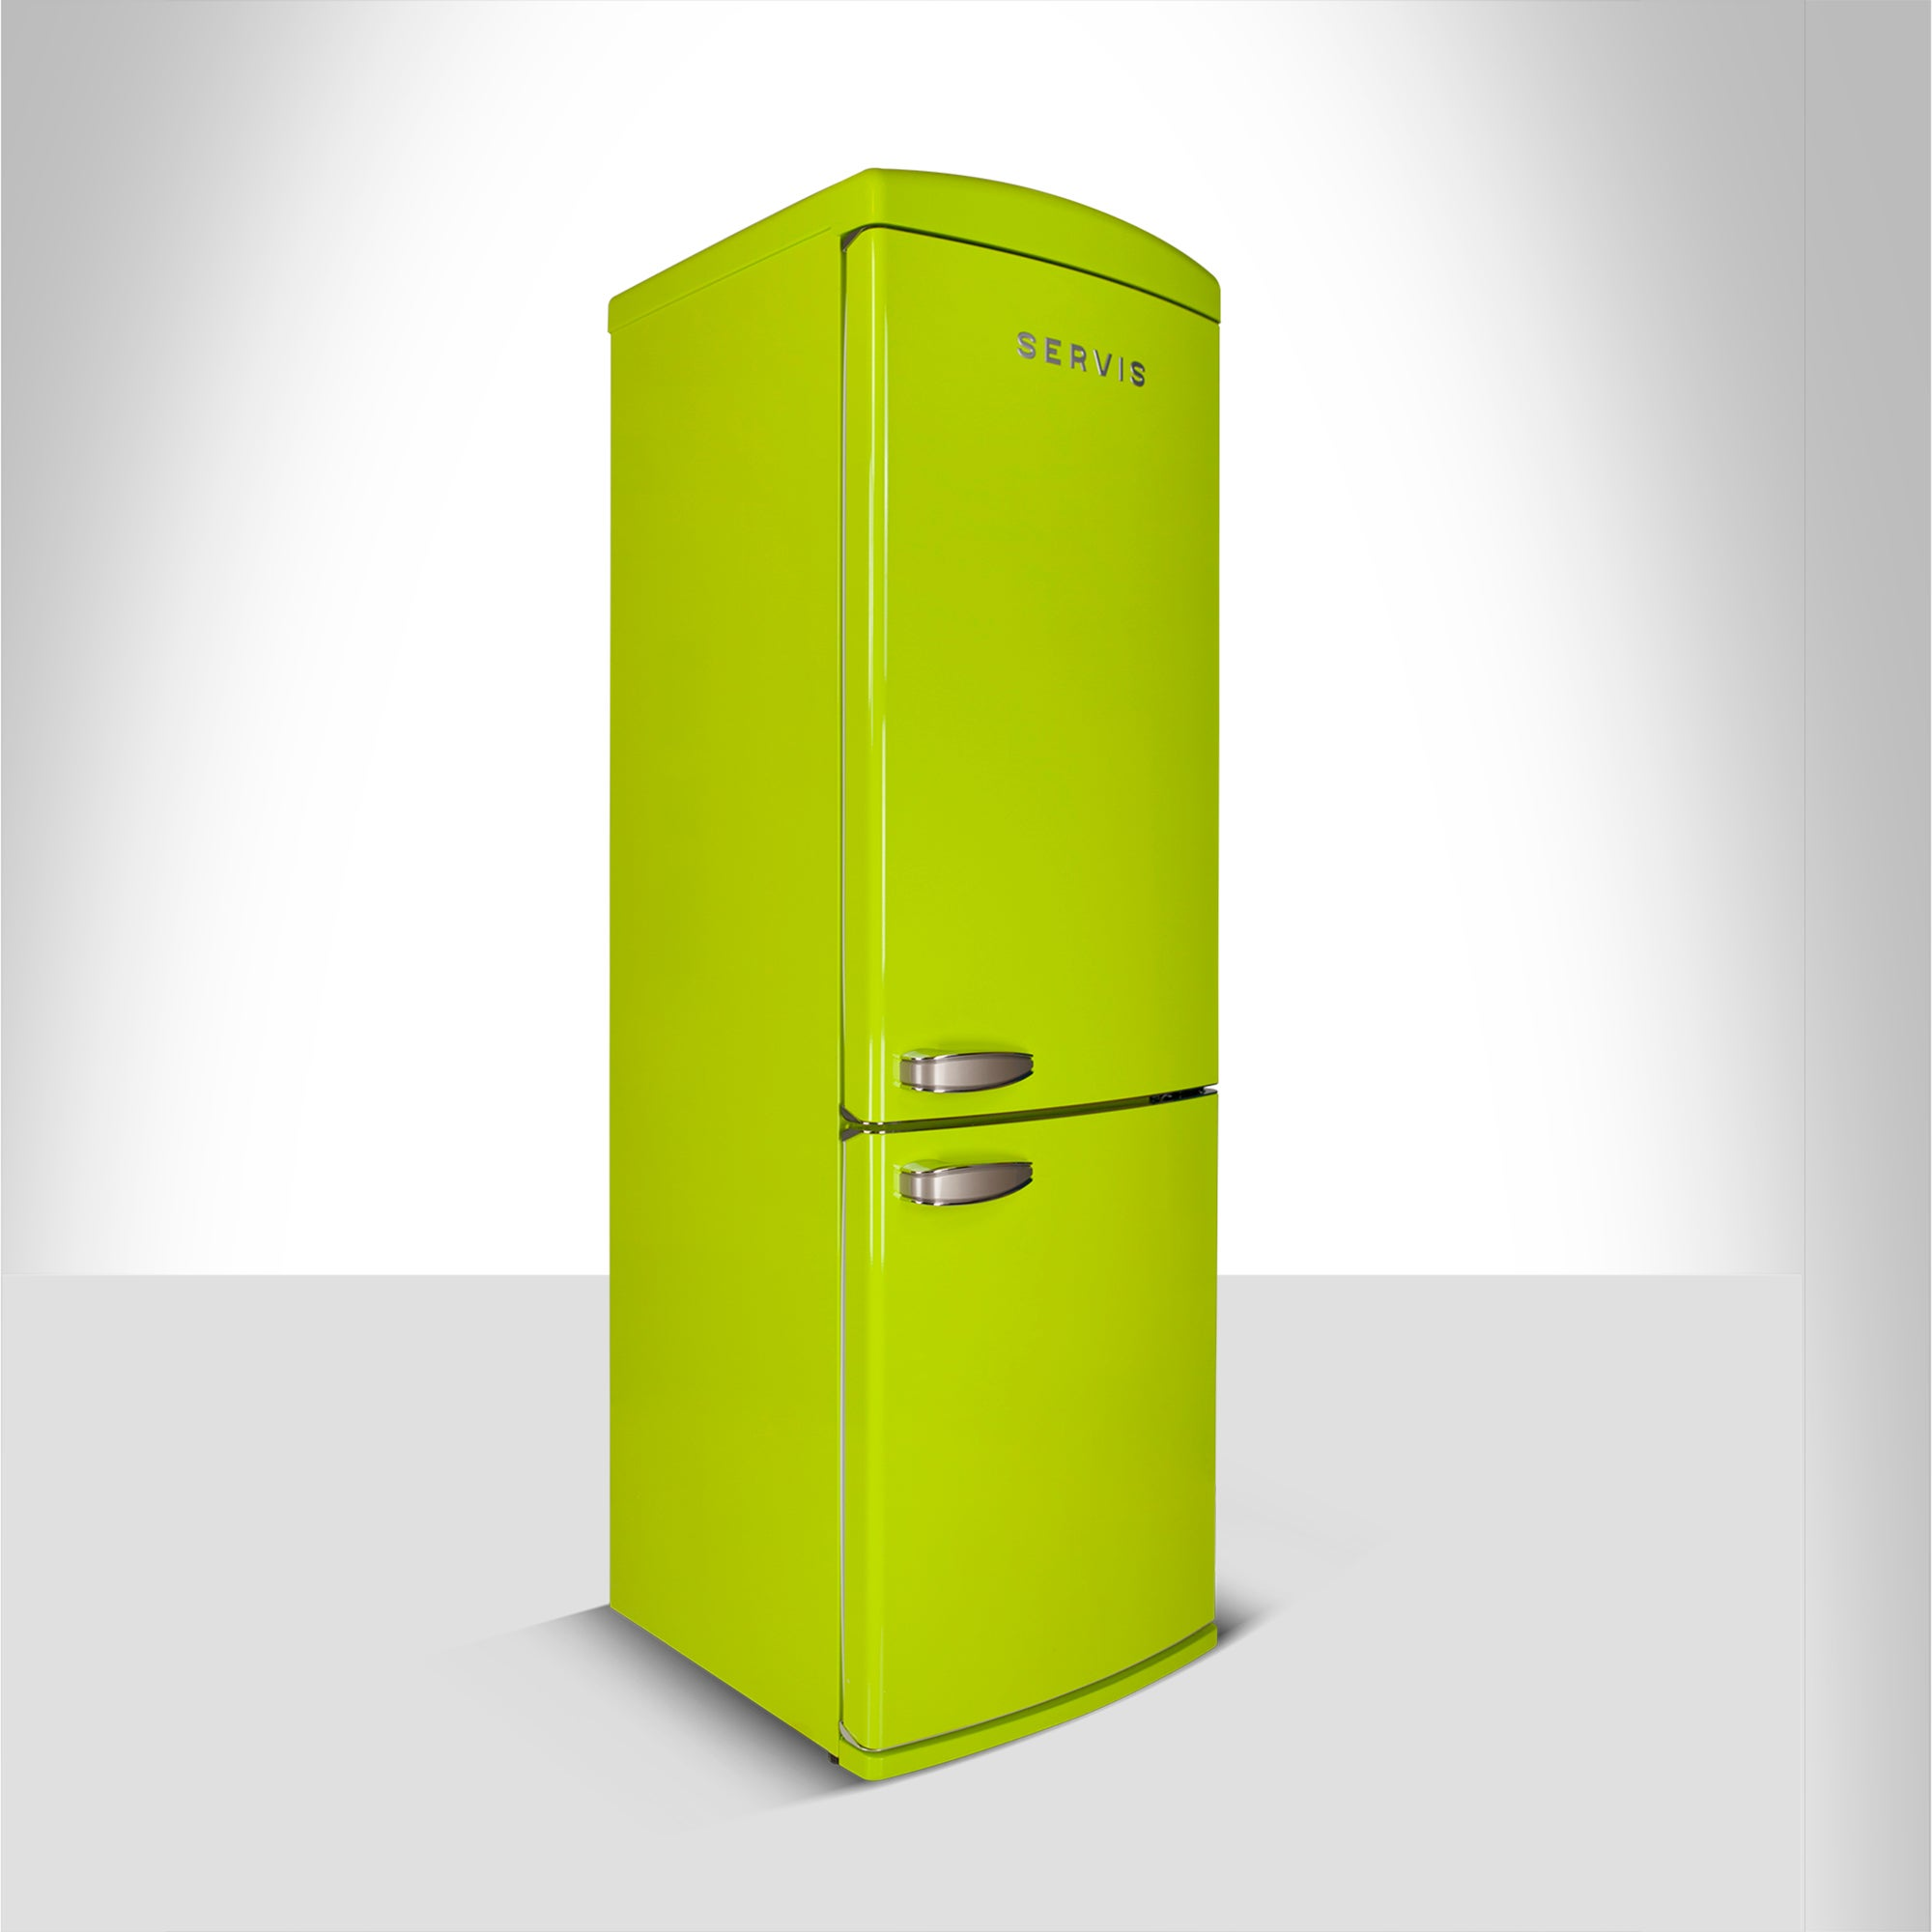 Servis C60185NFPT Green Retro Style Fridge Freezer Green